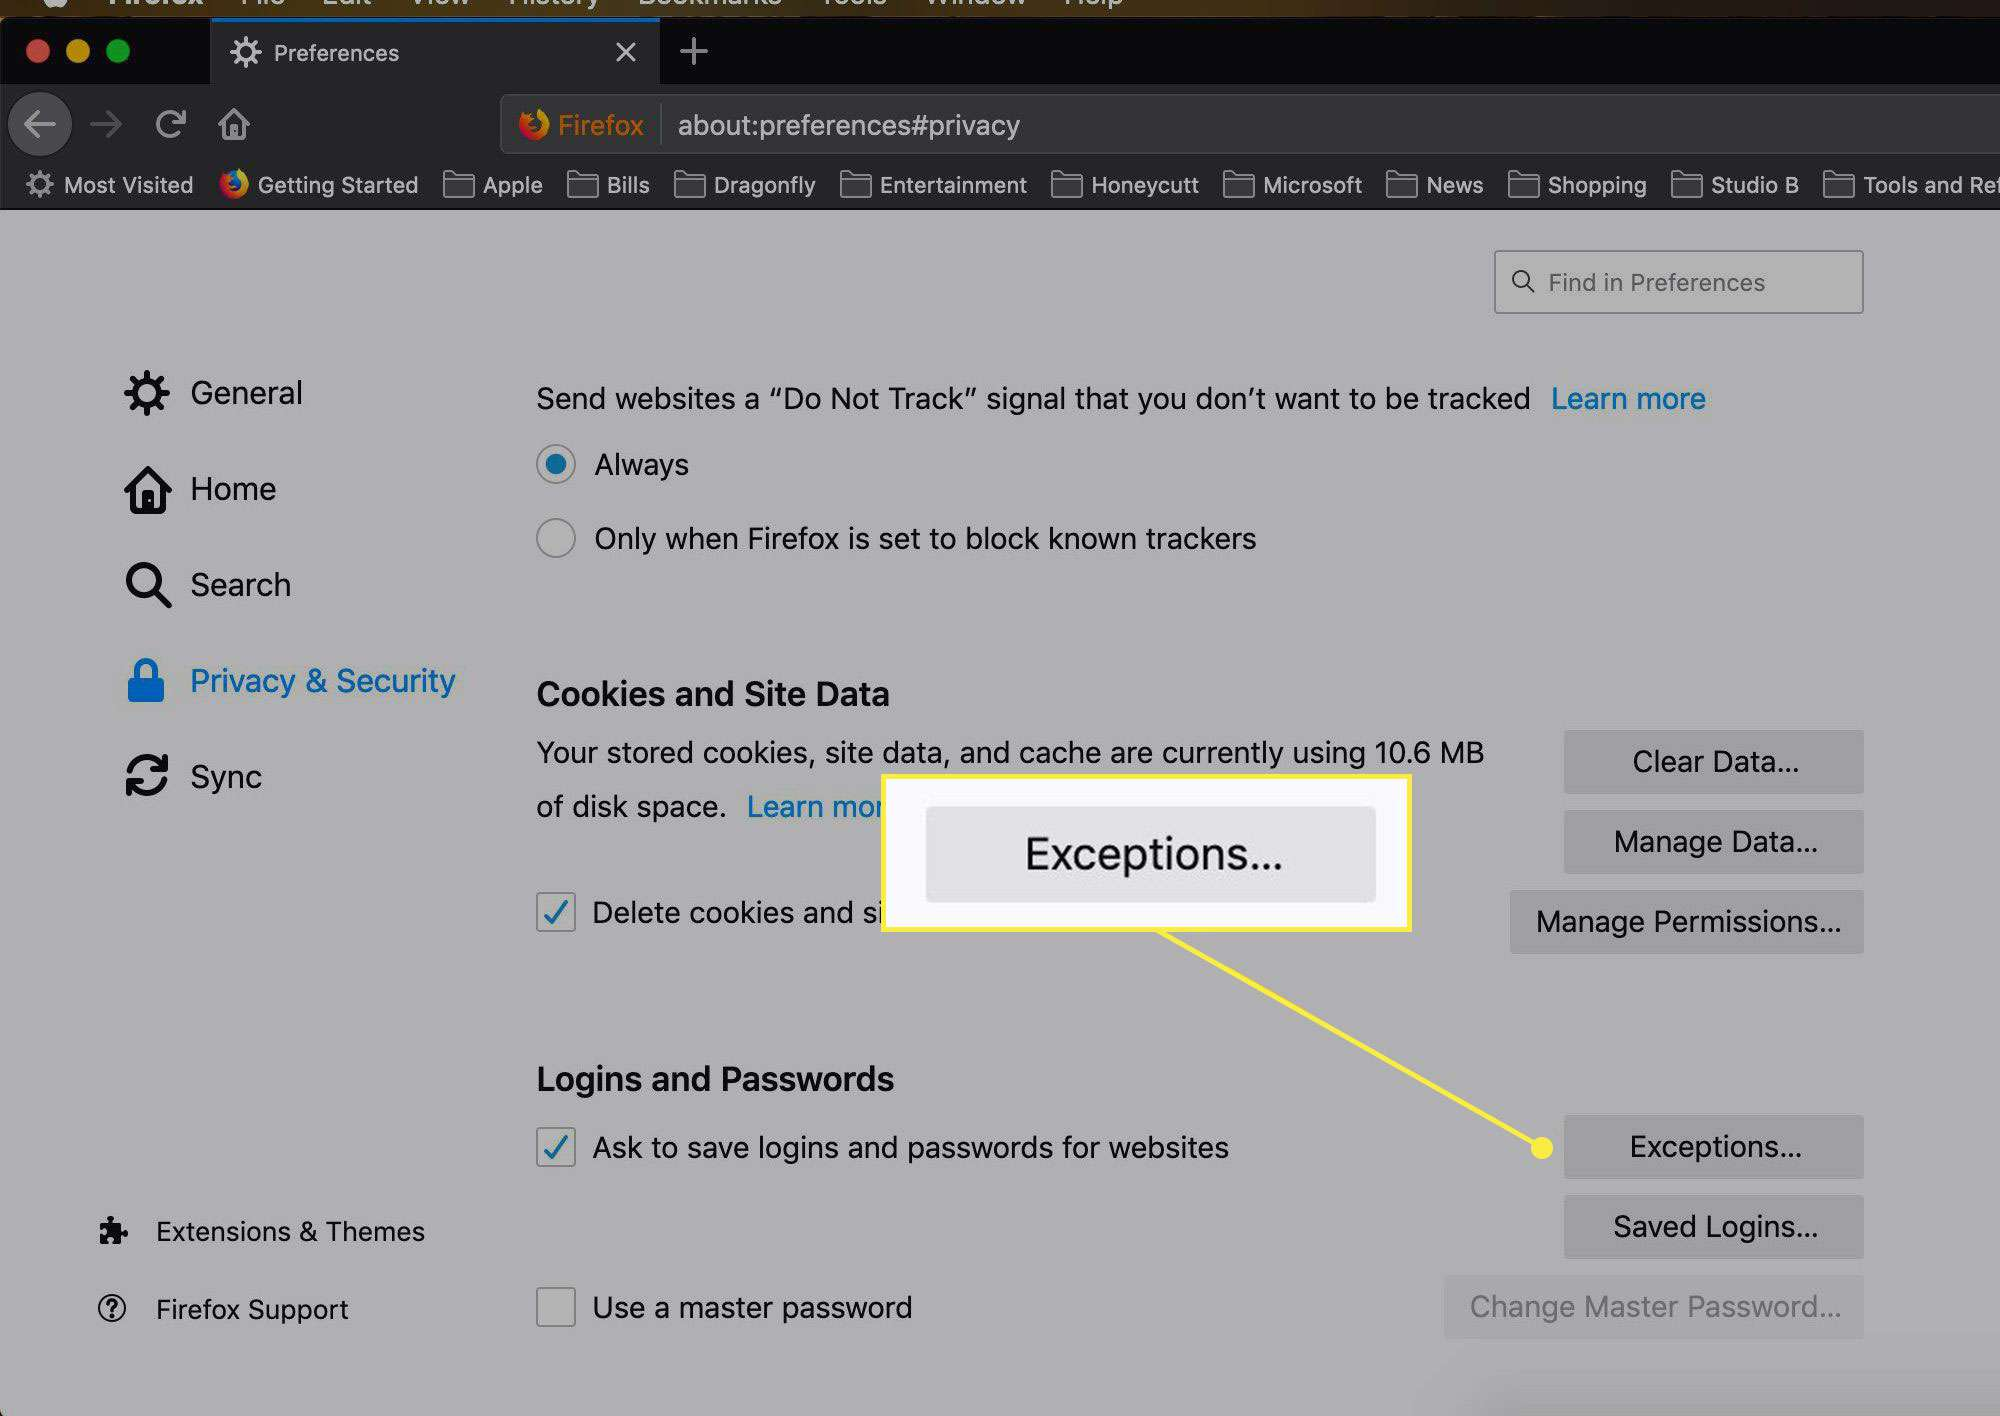 The Exceptions option in Firefox settings